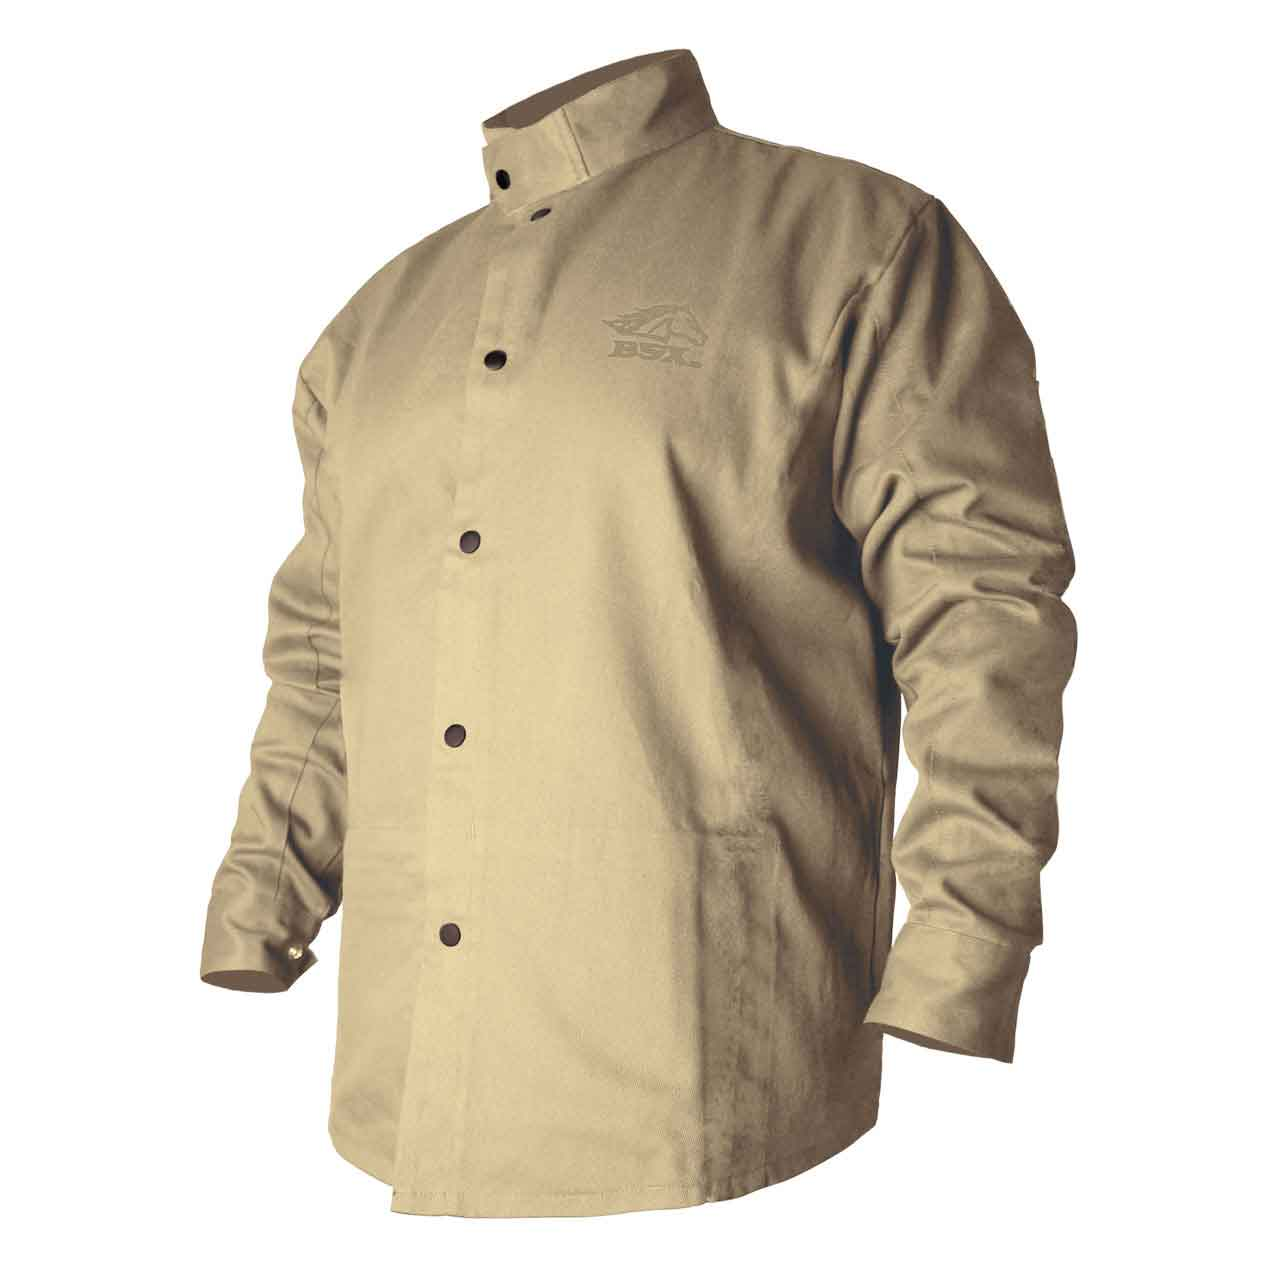 Black Stallion BSX BXTN9C Khaki Fire Resistant Cotton Welding Jacket, Large